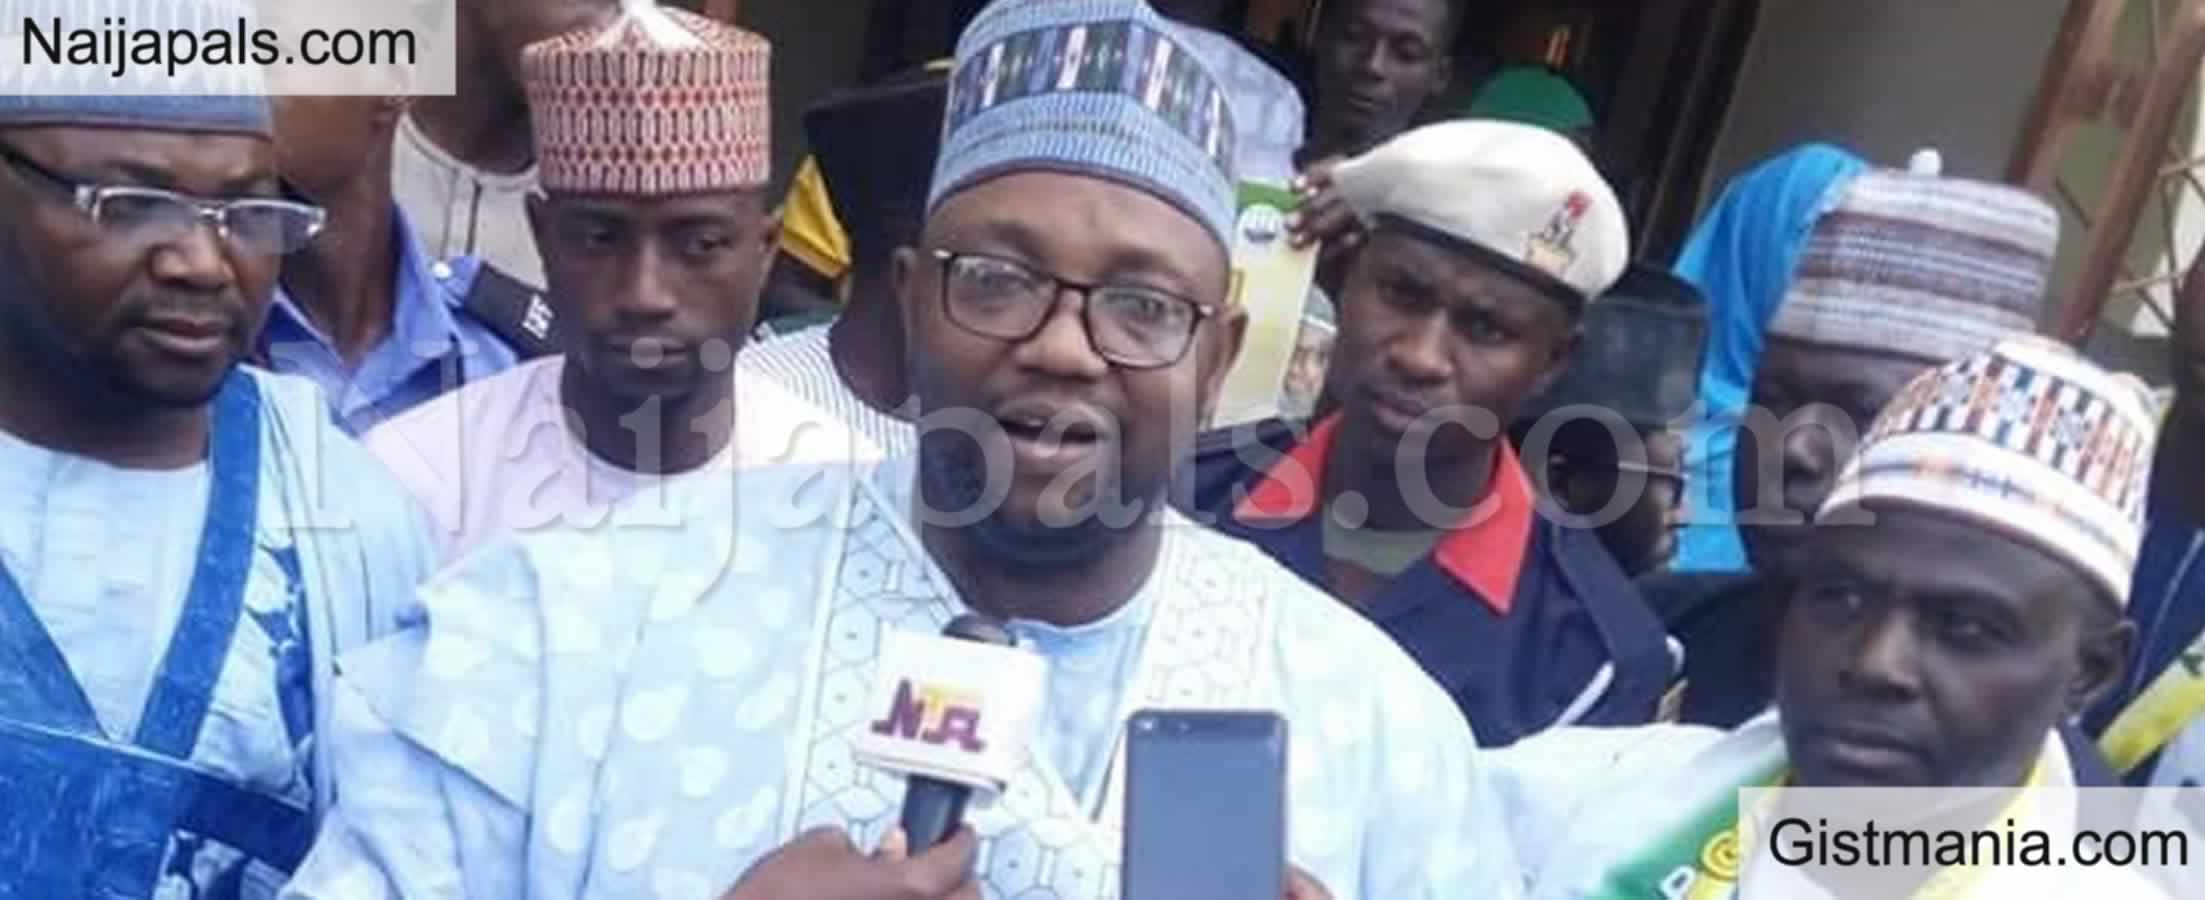 <img alt='.' class='lazyload' data-src='https://img.gistmania.com/emot/news.gif' /> <b>Zamfara APC Members Offered Bandits N56m To Not Release The Abducted Girls</b> - Sani Shinkafi